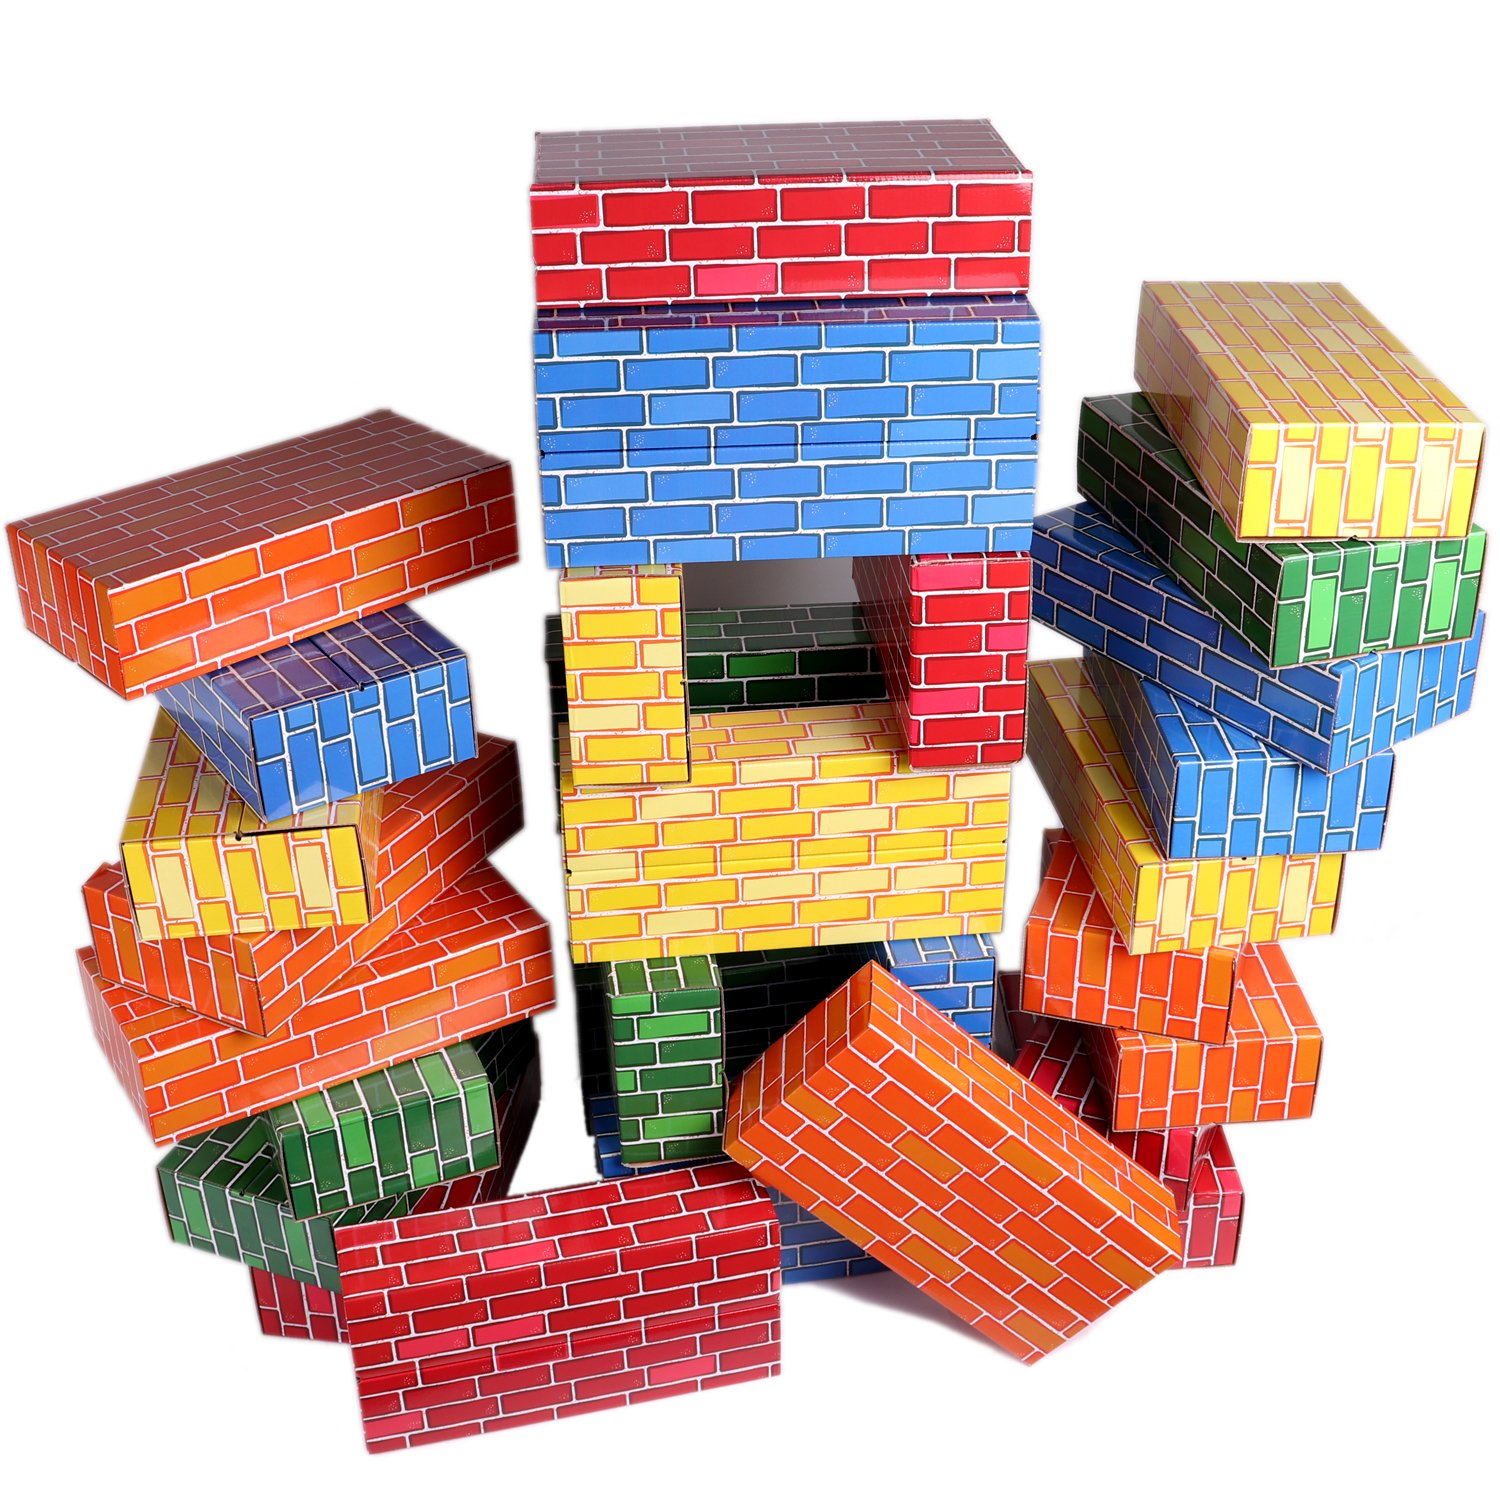 30-Pack Jumbo Blocks: Extra-Thick Cardboard Building Blocks in 5 Bright Colors by Tenby Living Review